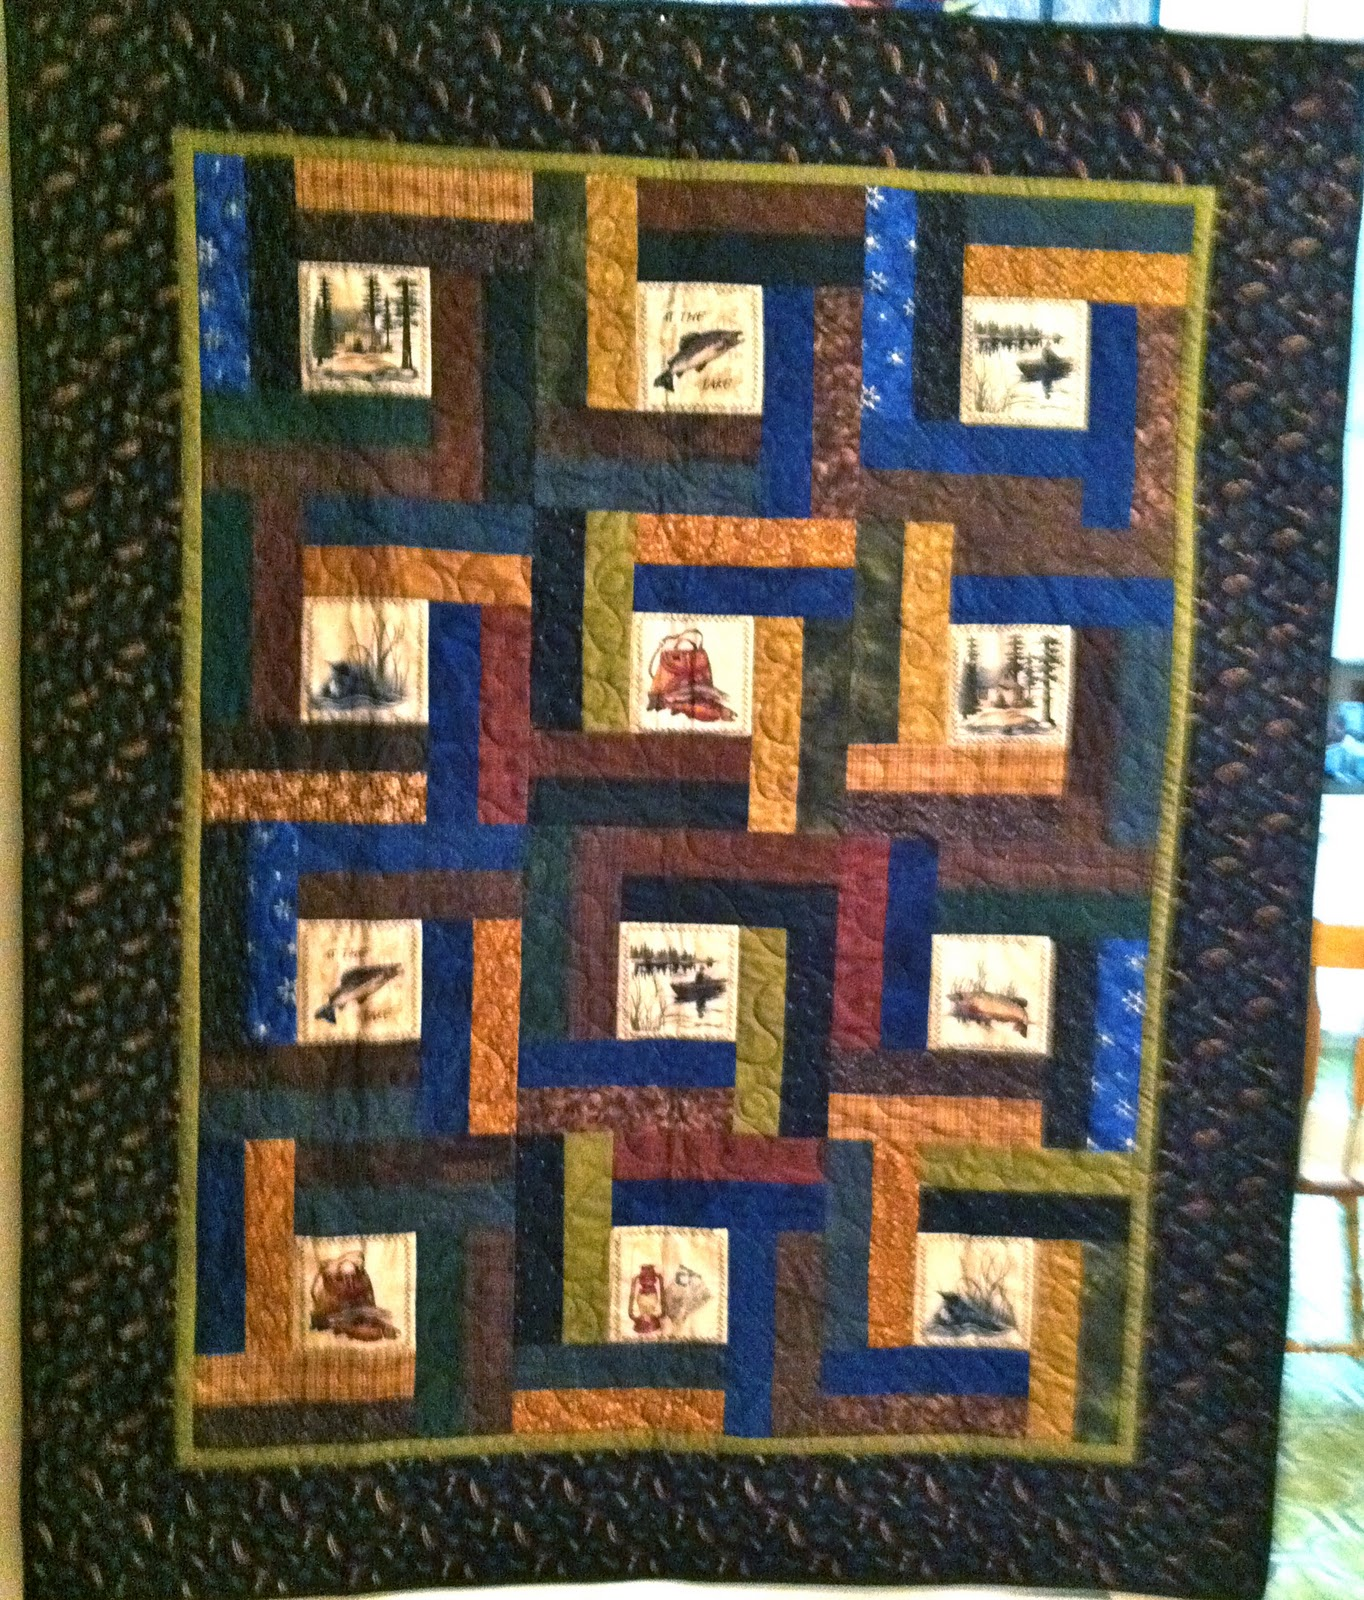 Linda's Quiltmania: Mark's Fly Fishing Quilt : fishing quilt - Adamdwight.com